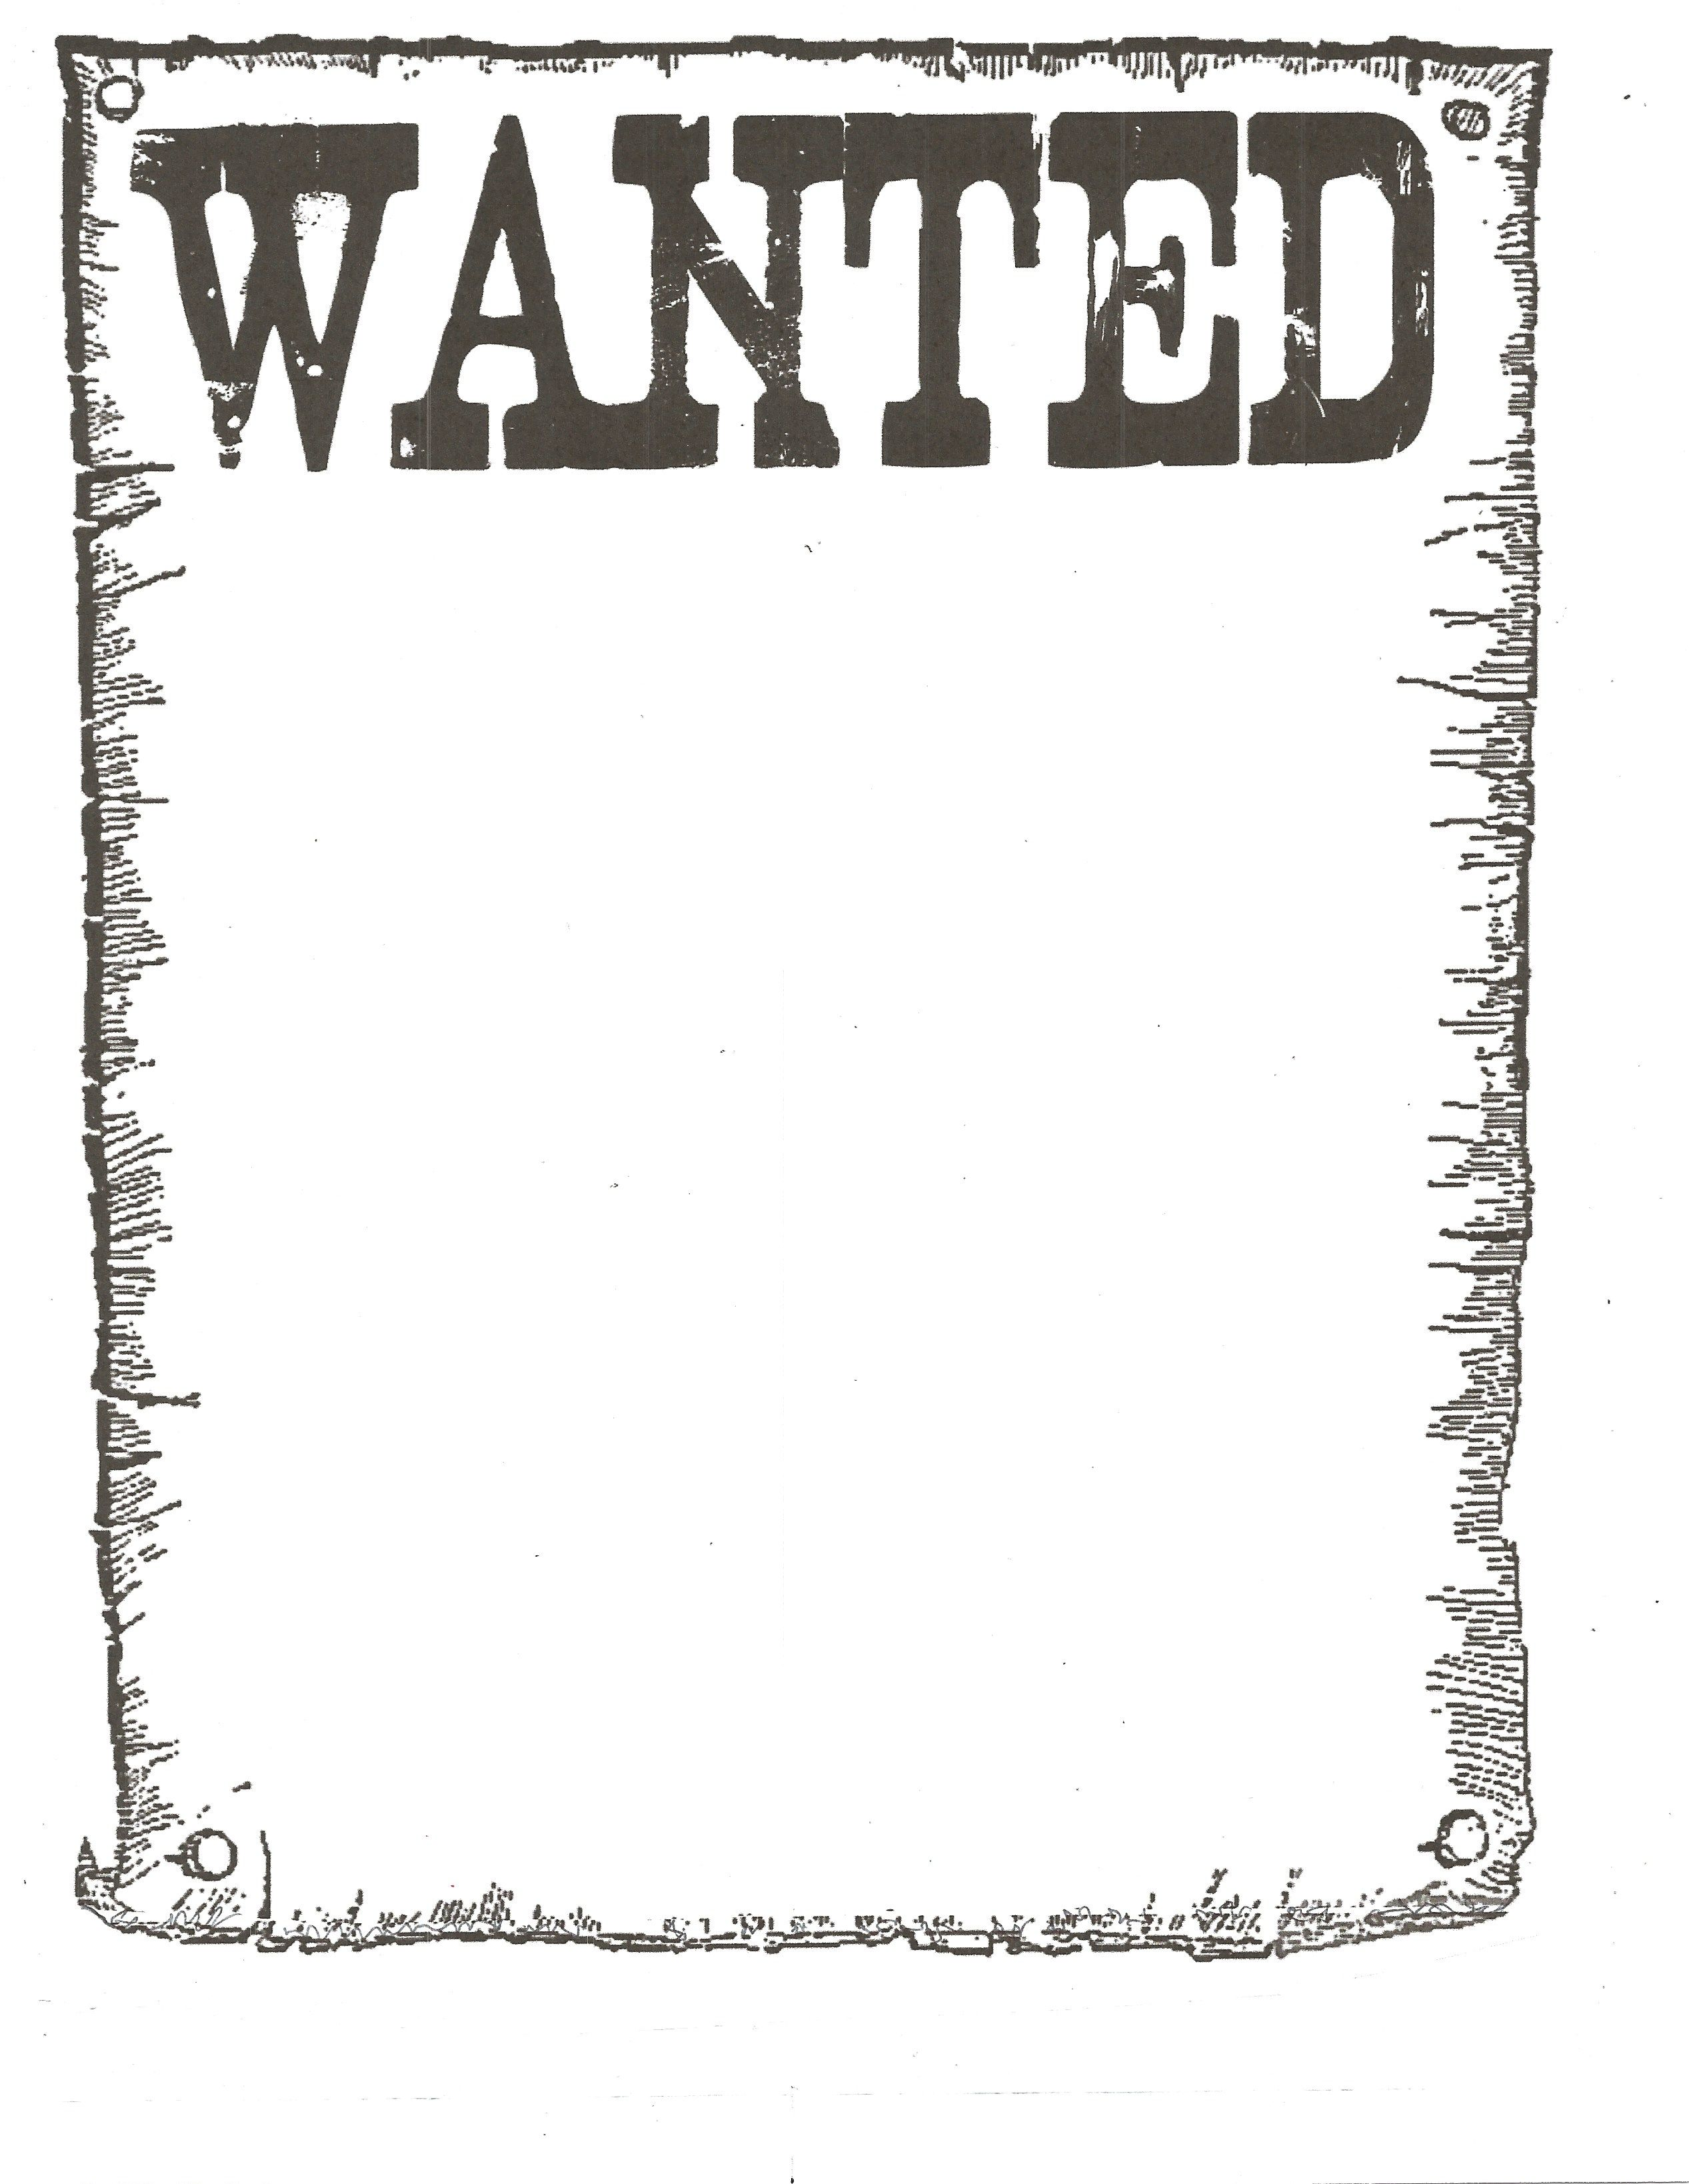 Wanted Poster | organization | Pinterest | Western theme, Westerns ...